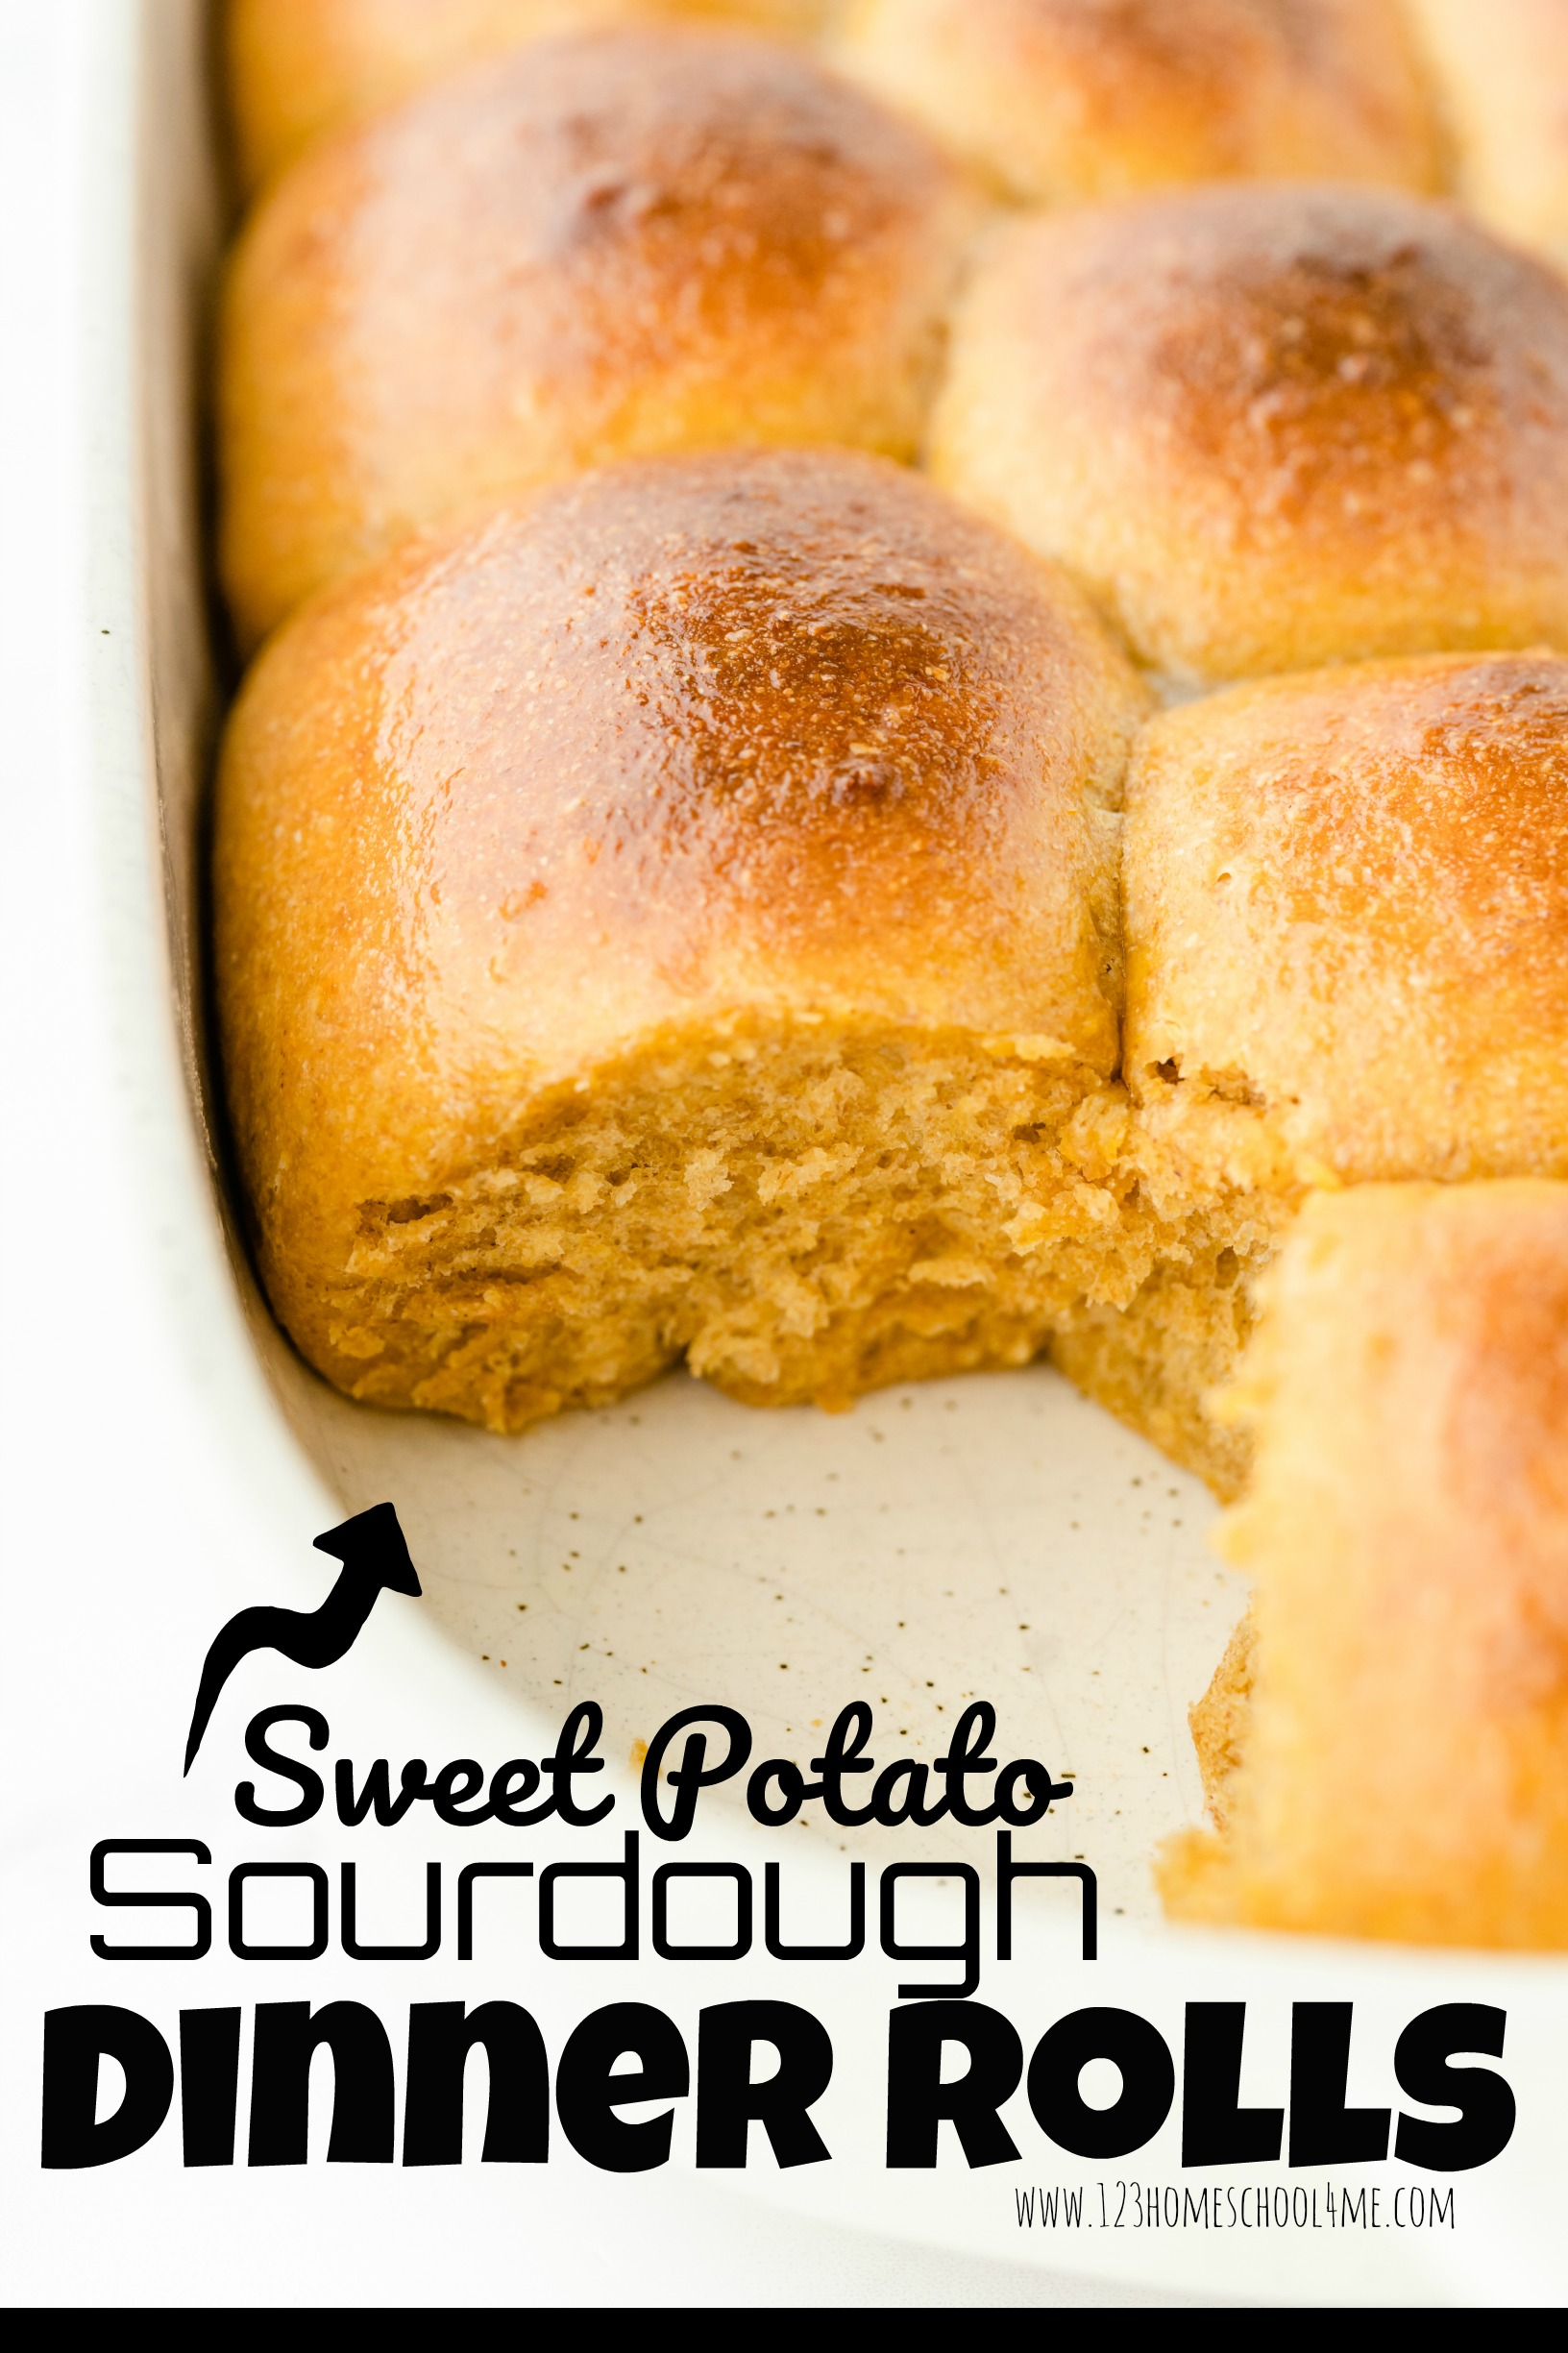 Sweet Potato Sourdough Dinner Rolls